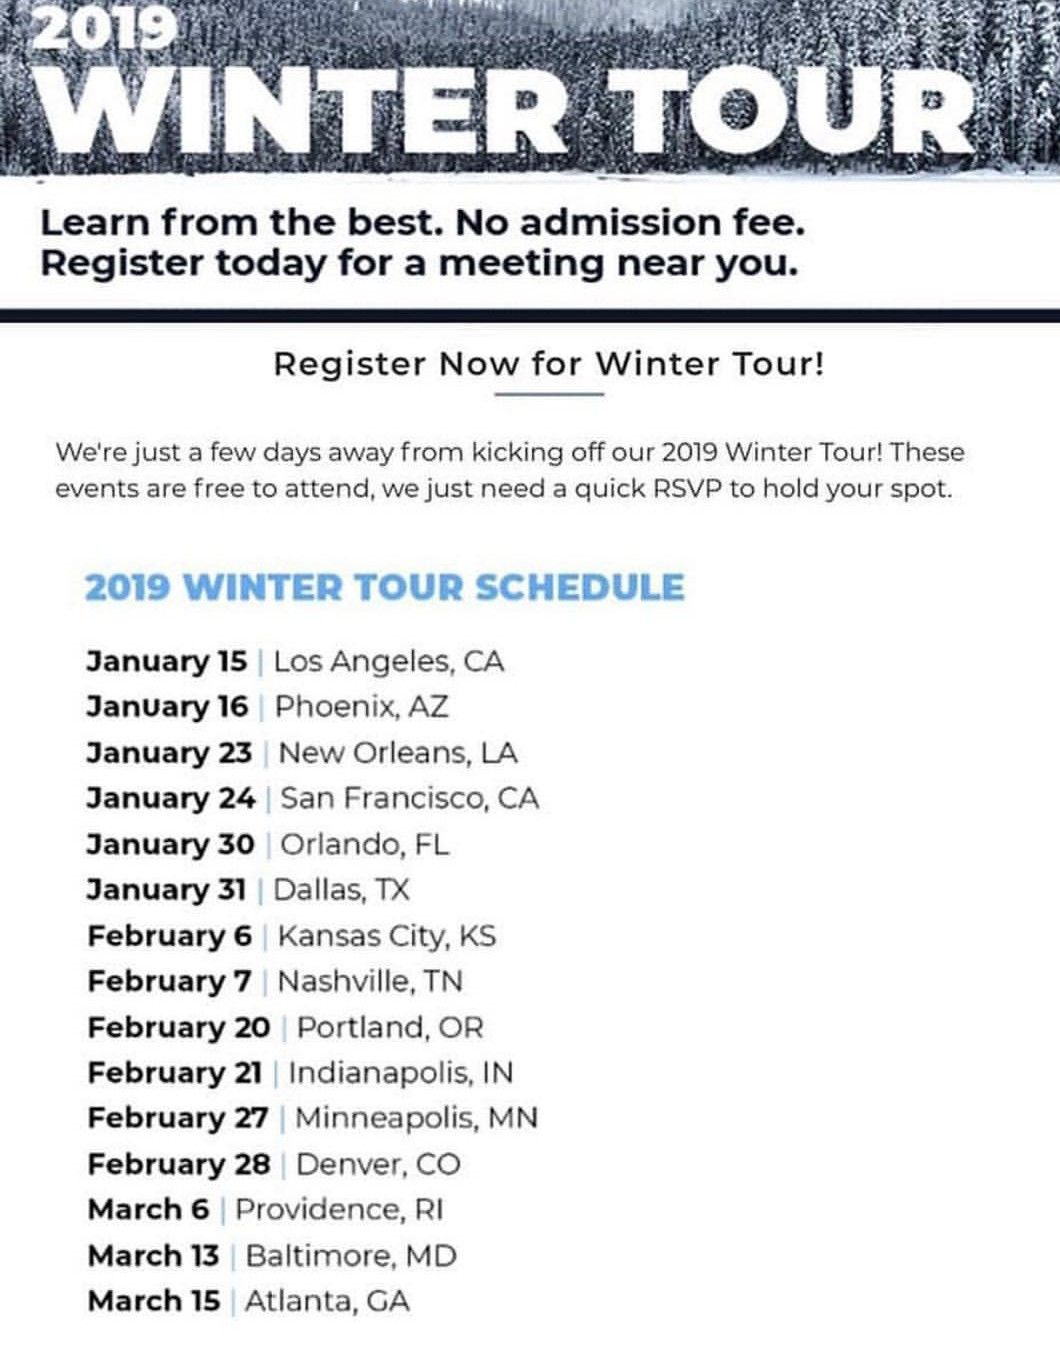 The Symmetry Financial Group Winter Tour Is In Full Swing Next